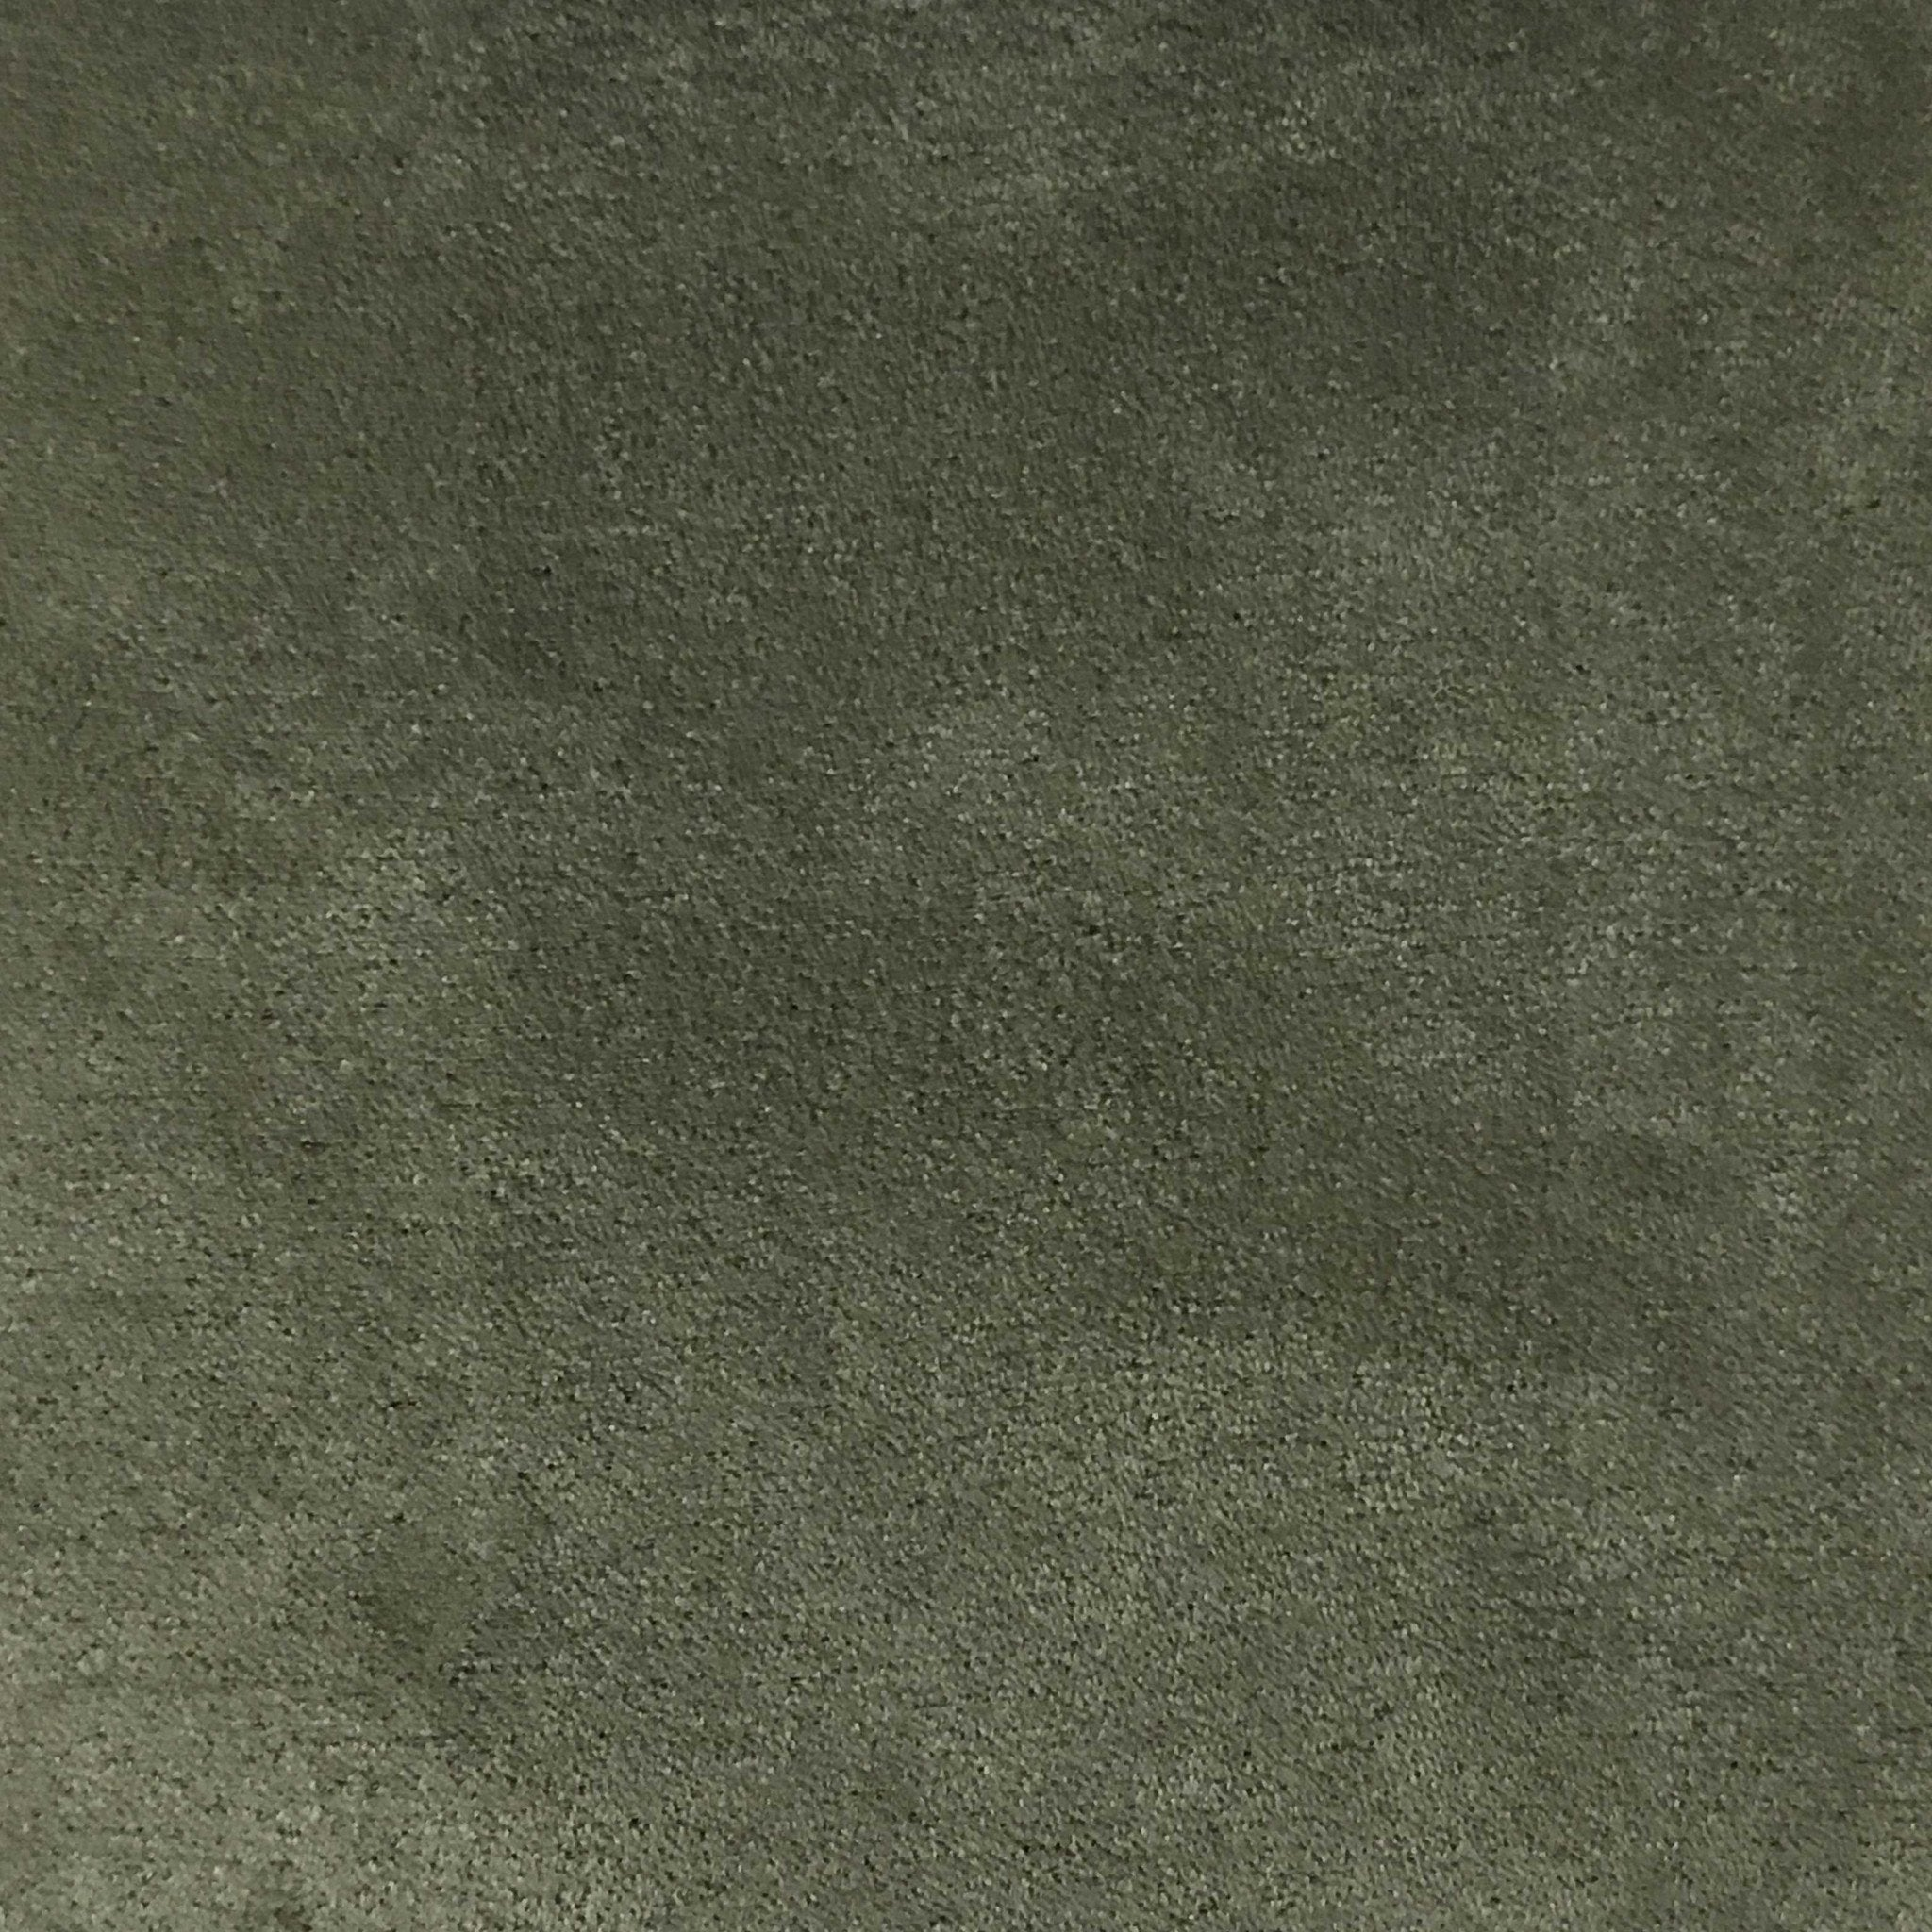 Light Suede Microsuede Fabric By The Yard Available In